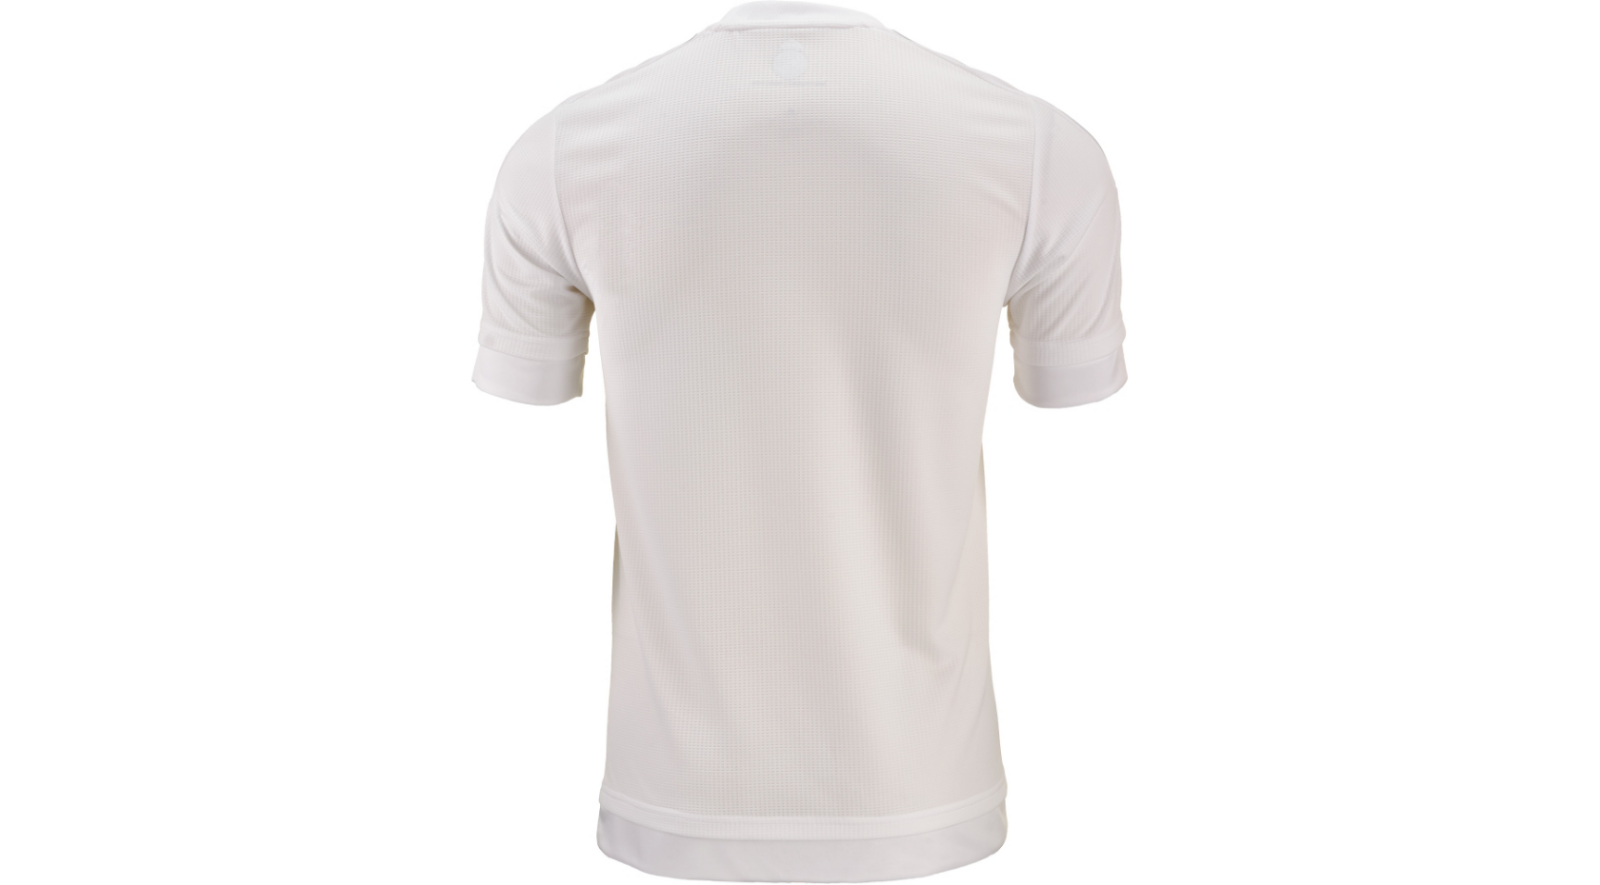 S12652 Adidas Real Madrid Home White Soccer Jersey Men S Size L 15 16 For Sale Online Ebay